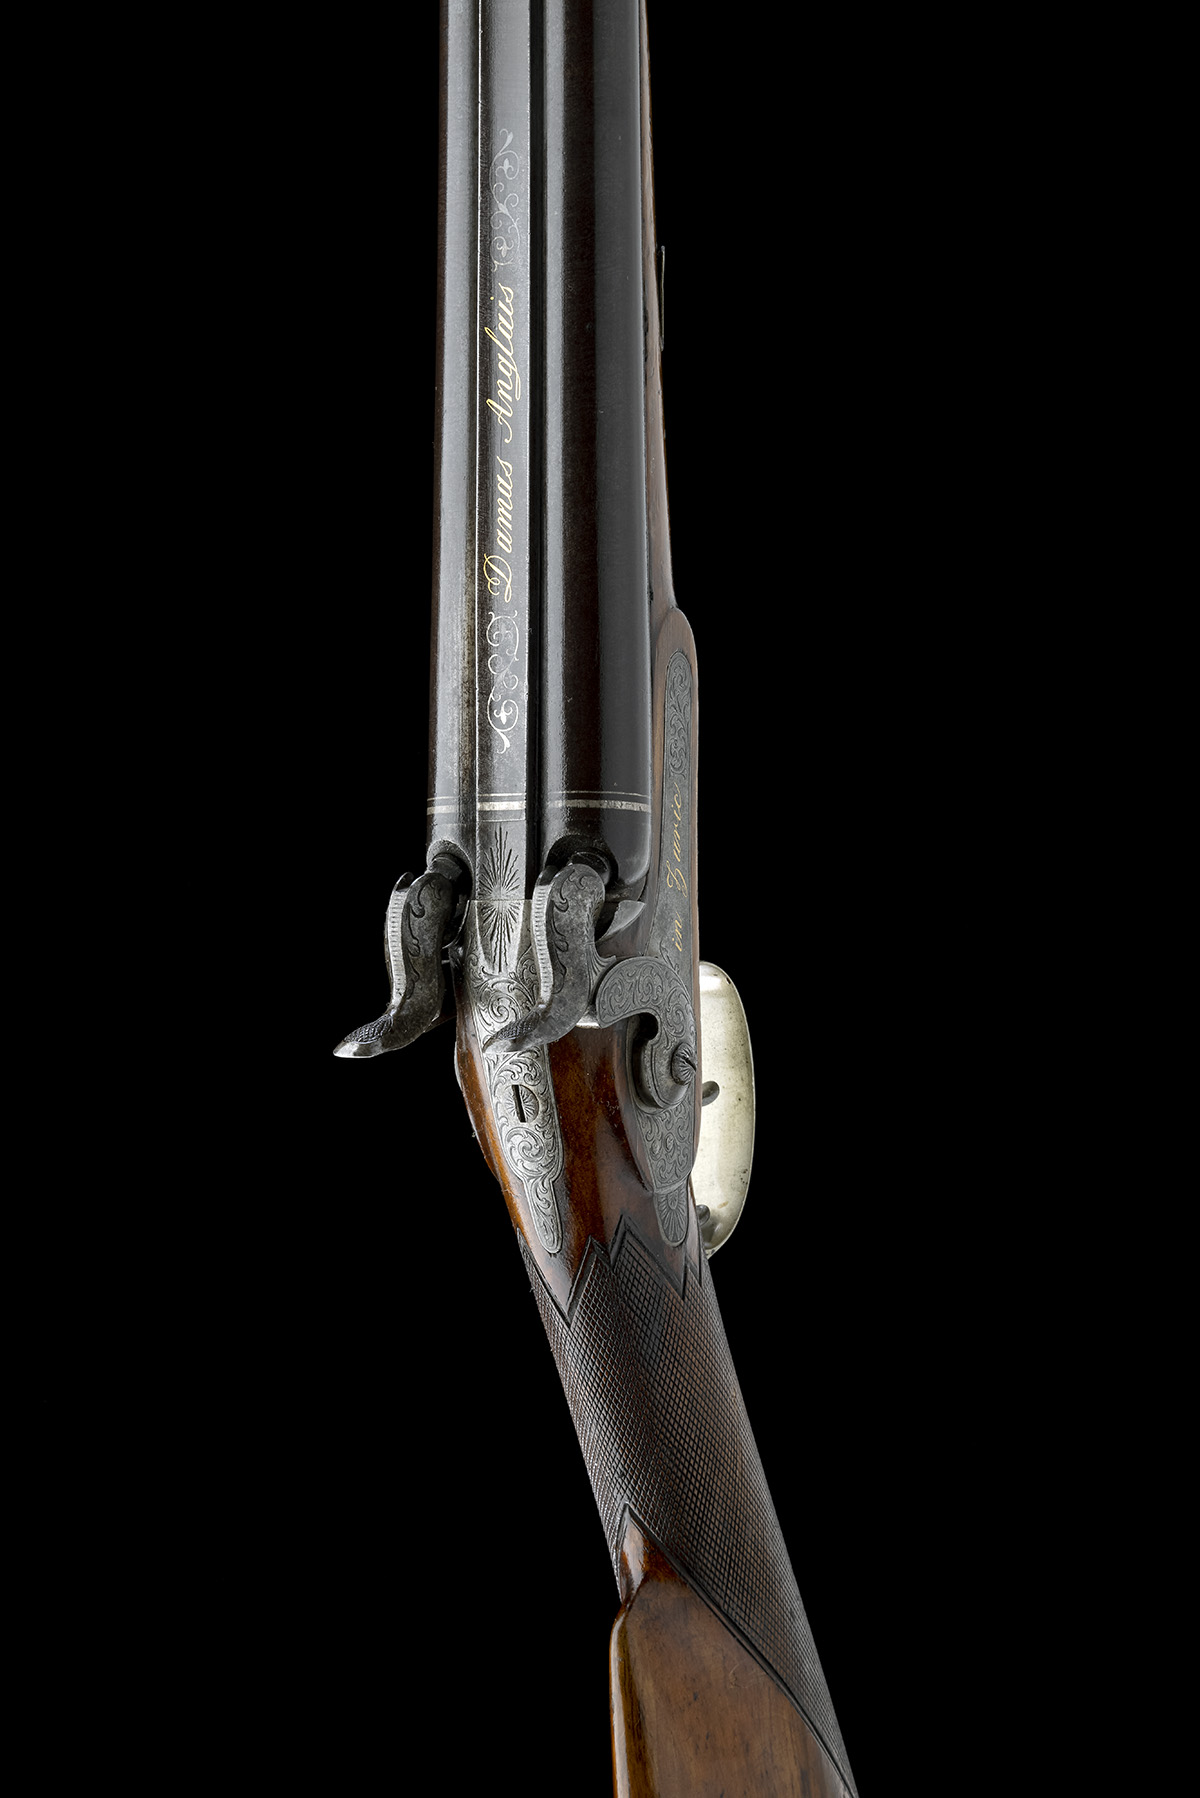 J. TAUBER, ZURICH A 14-BORE PERCUSSION DOUBLE-BARRELLED SPORTING-GUN, no visible serial number, - Image 6 of 9